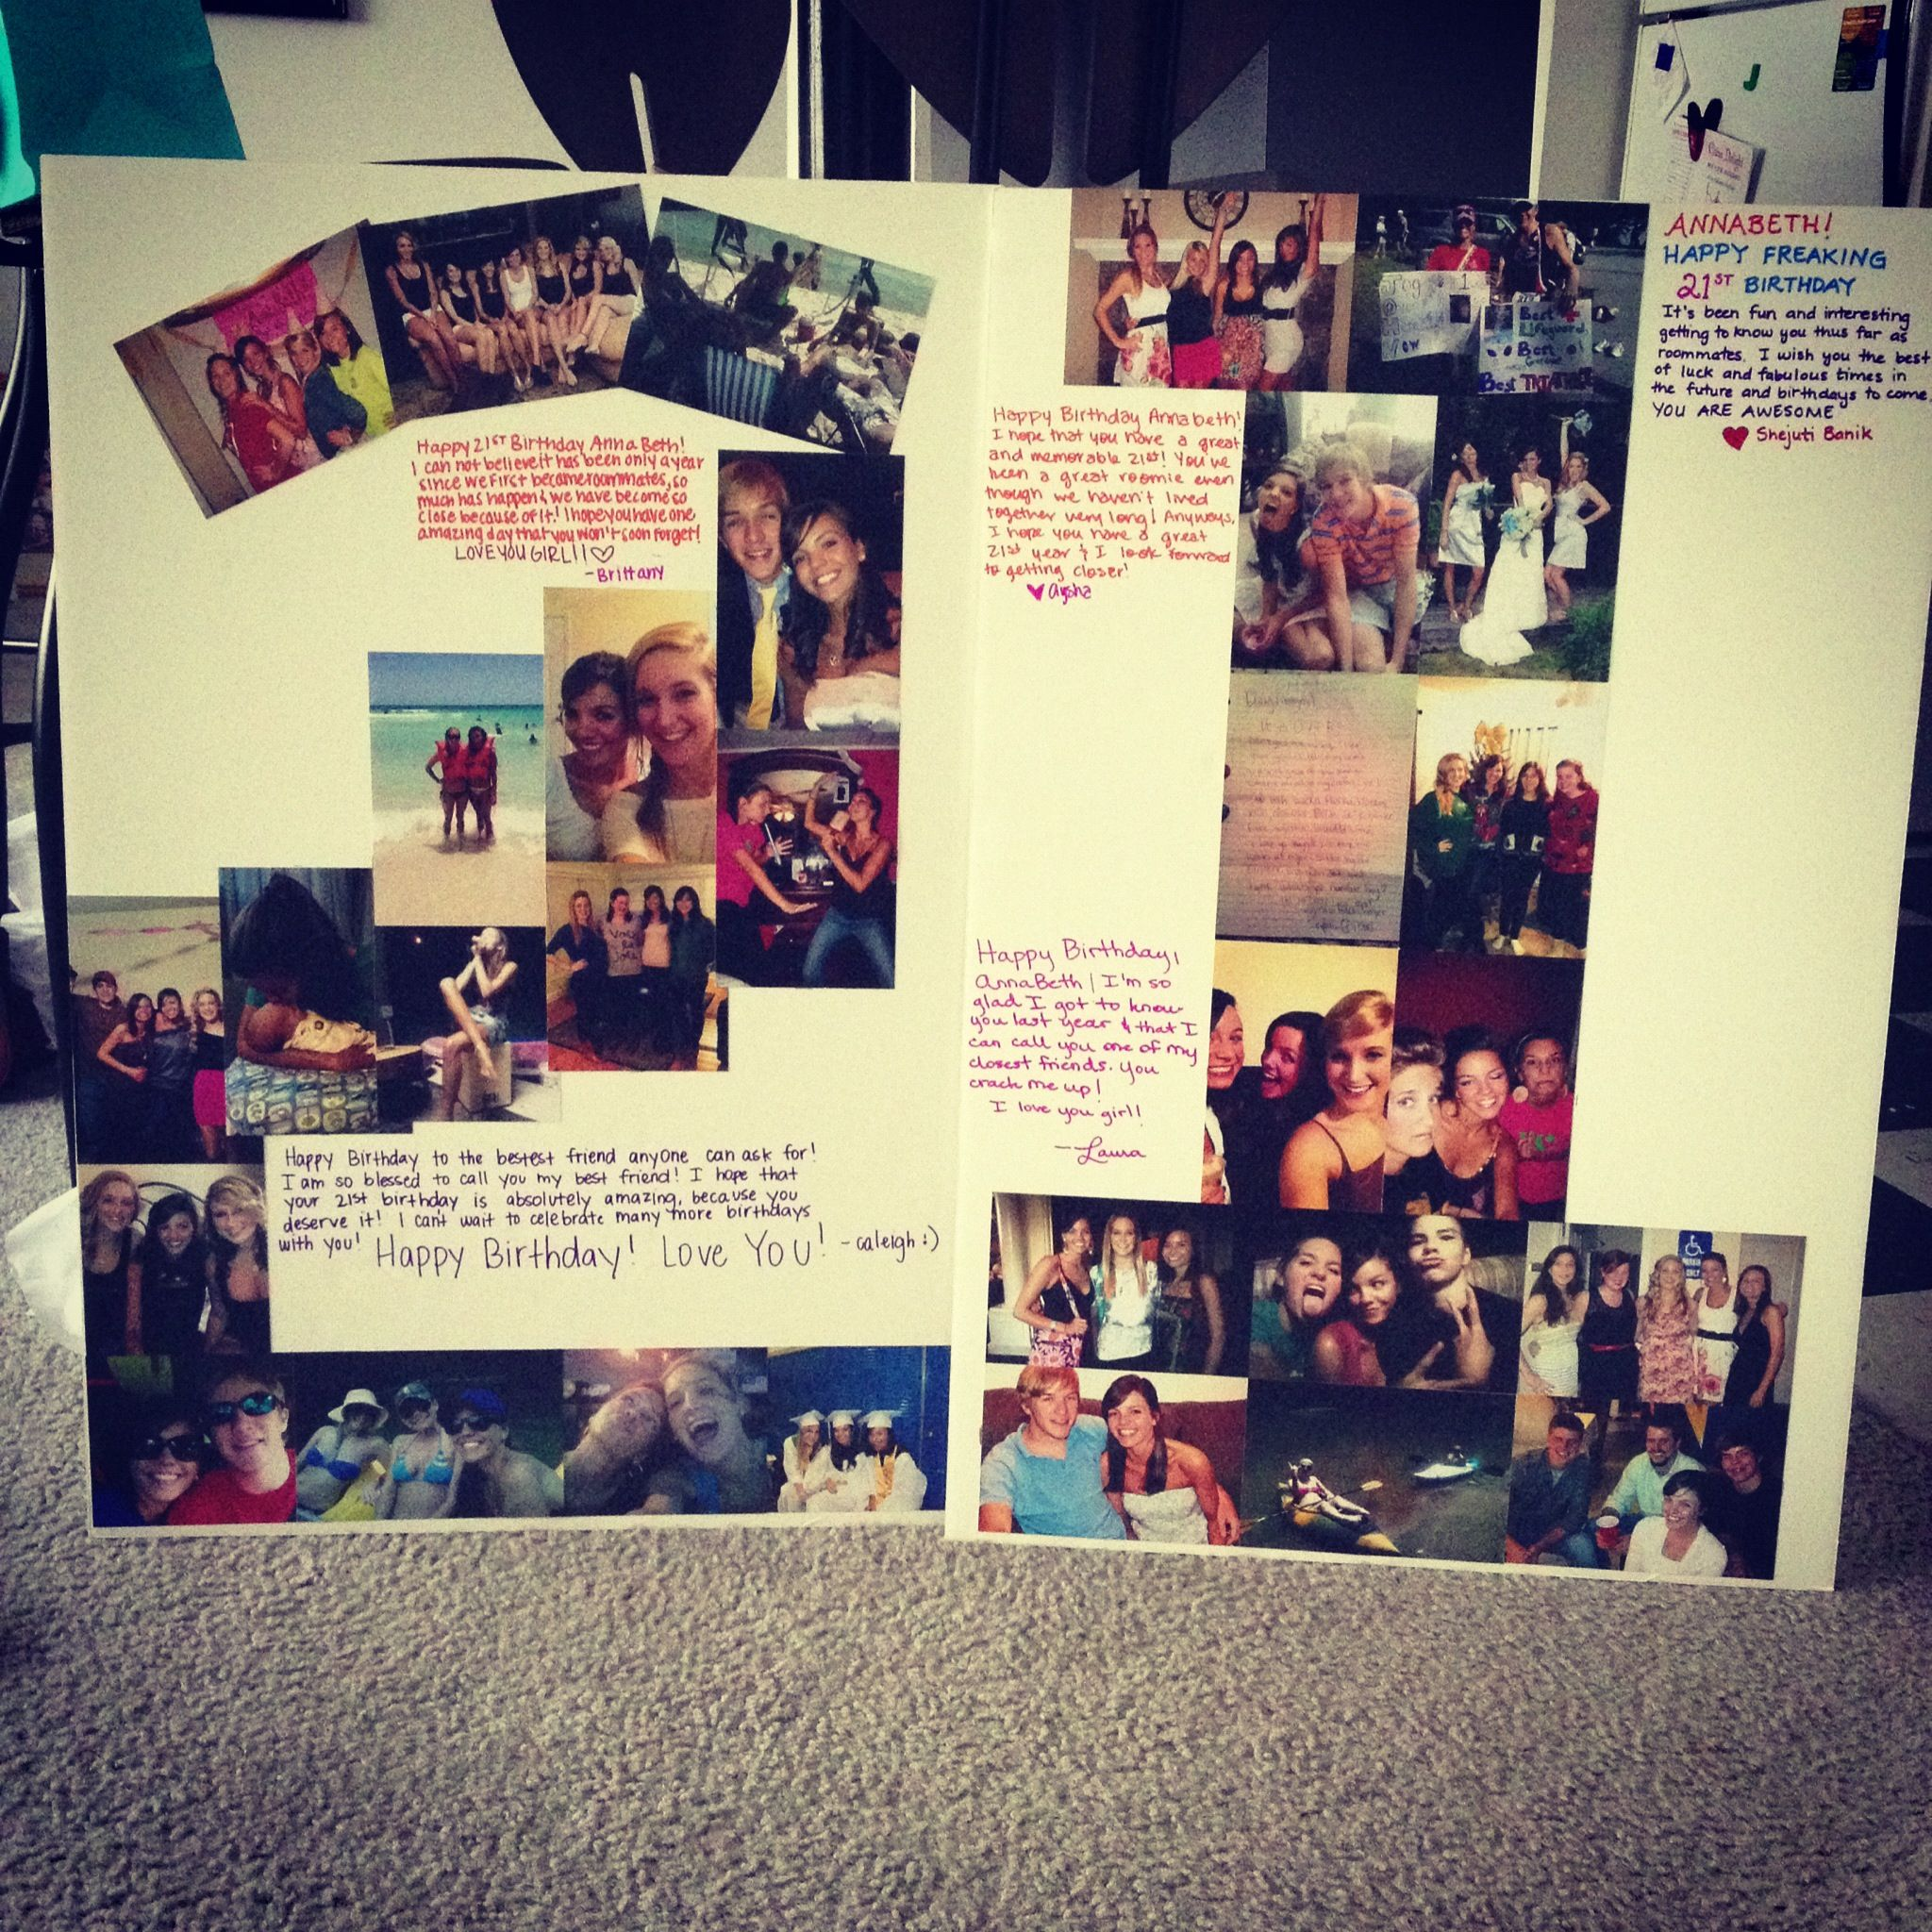 21st Birthday Idea Take A Picture Of Everyone At The Party And Make Poster Out It To Give Bday Person Later